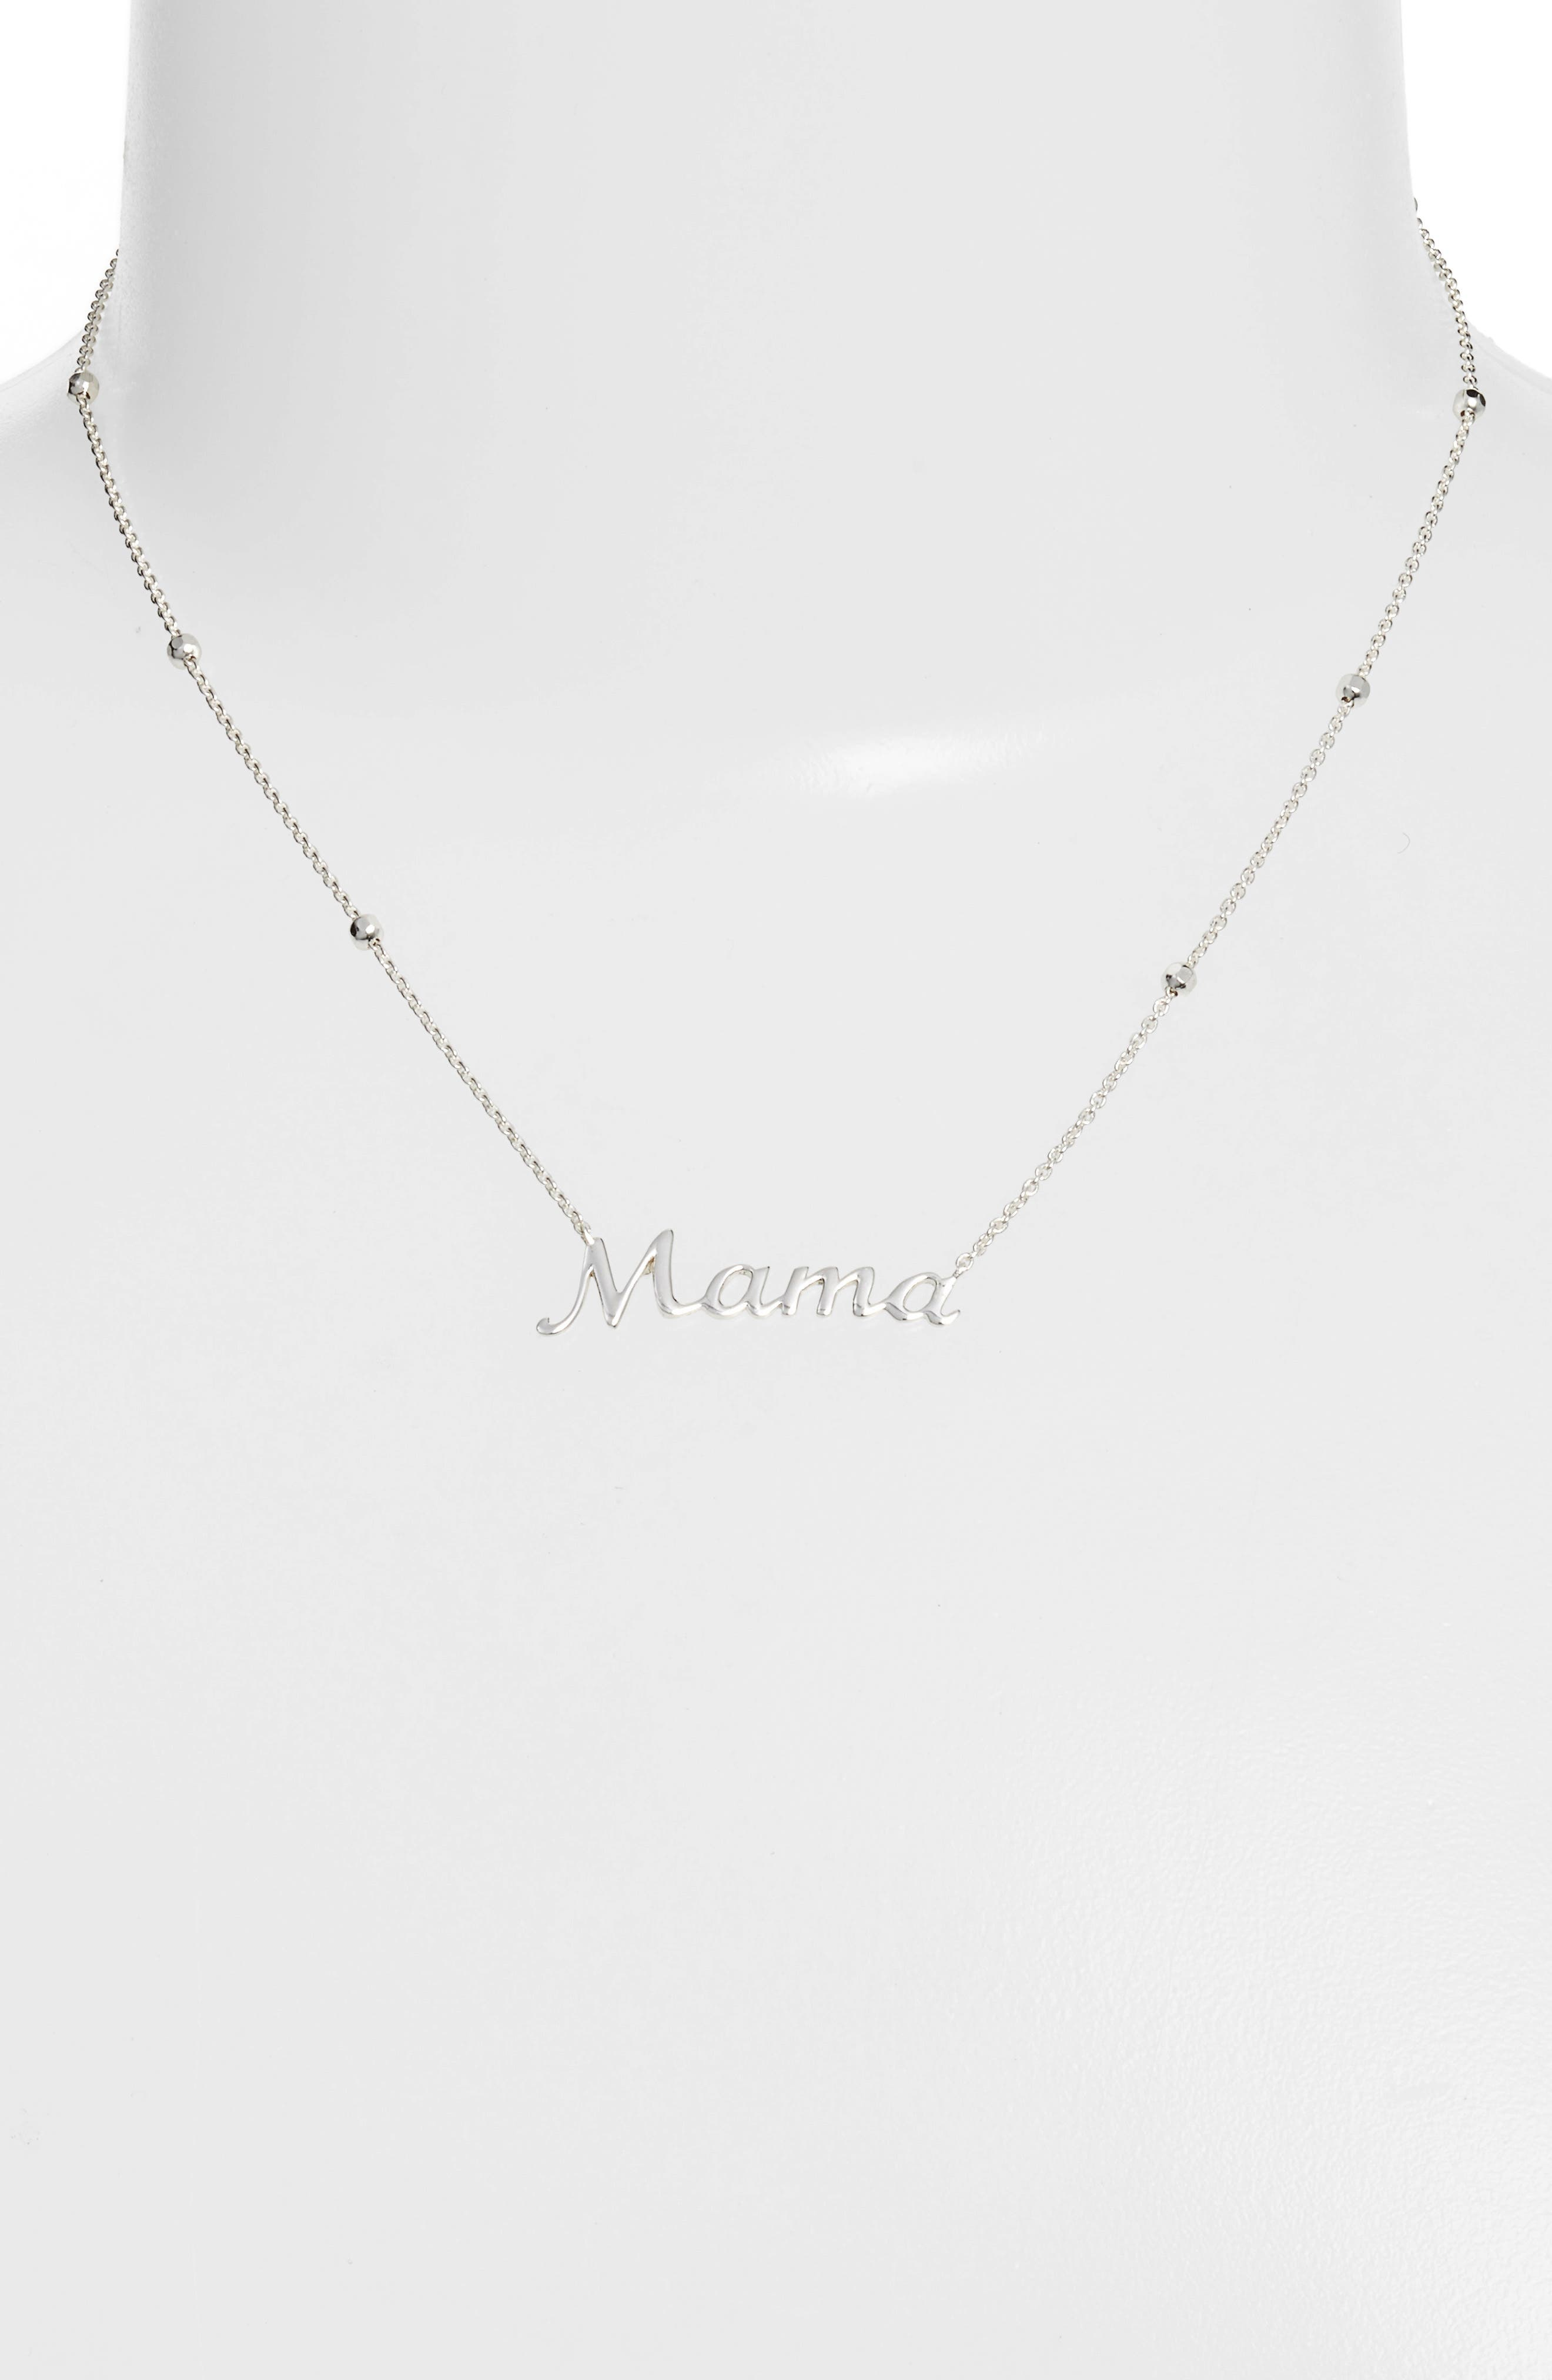 Mama Pendant Necklace,                             Alternate thumbnail 2, color,                             SILVER